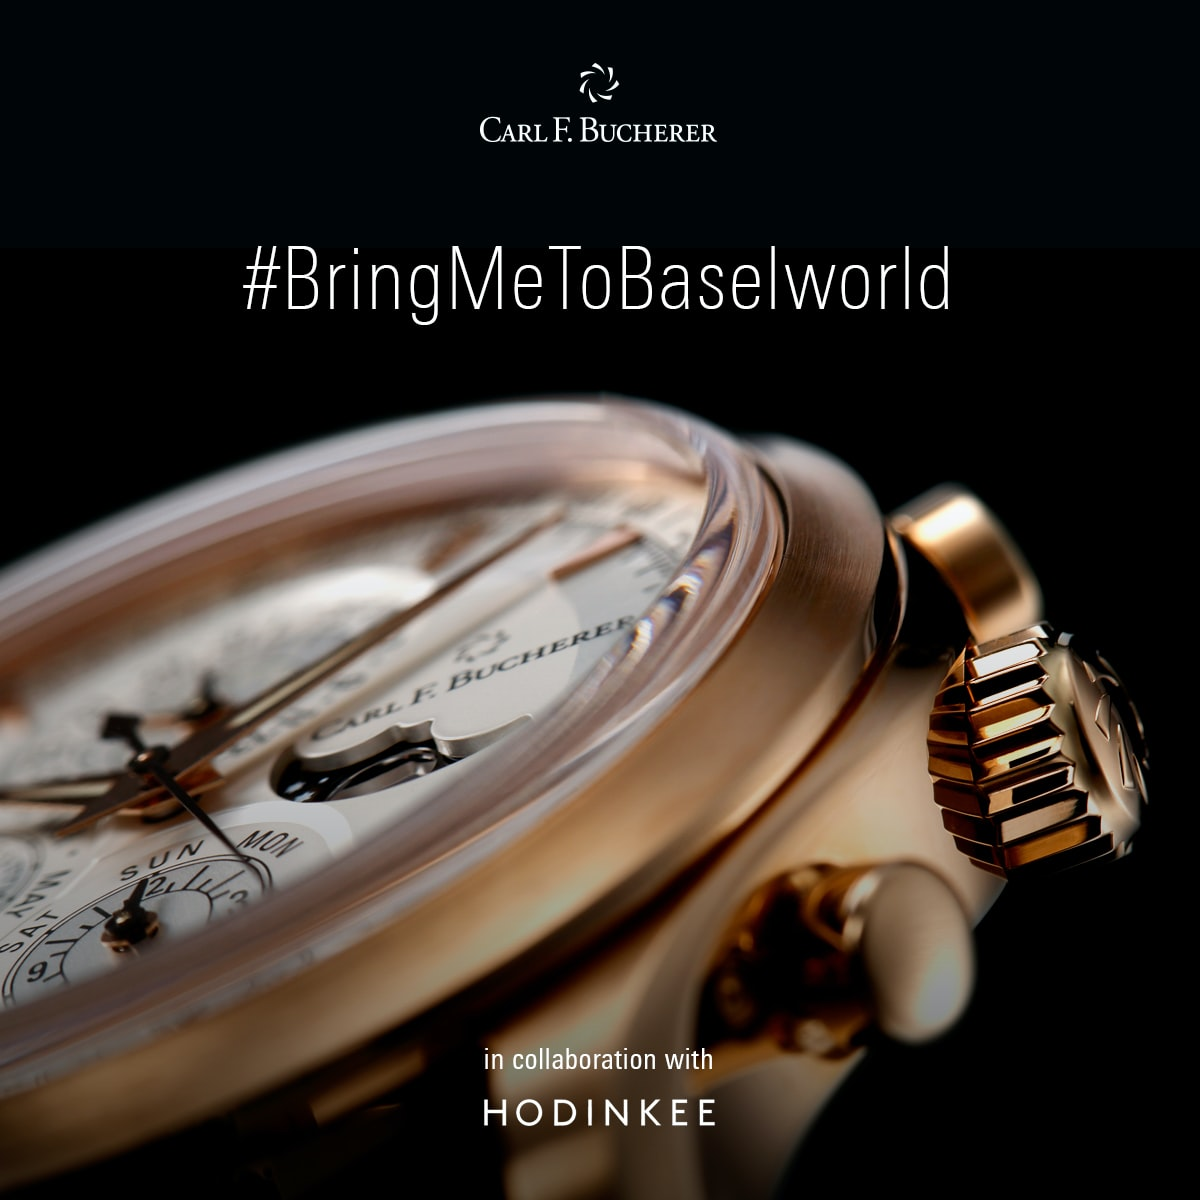 Carl F. Bucherer And HODINKEE Congratulate The Winner Of Our Trip To Basel Contest! Carl F. Bucherer And HODINKEE Congratulate The Winner Of Our Trip To Basel Contest! cfb hodinkee bslwrld16